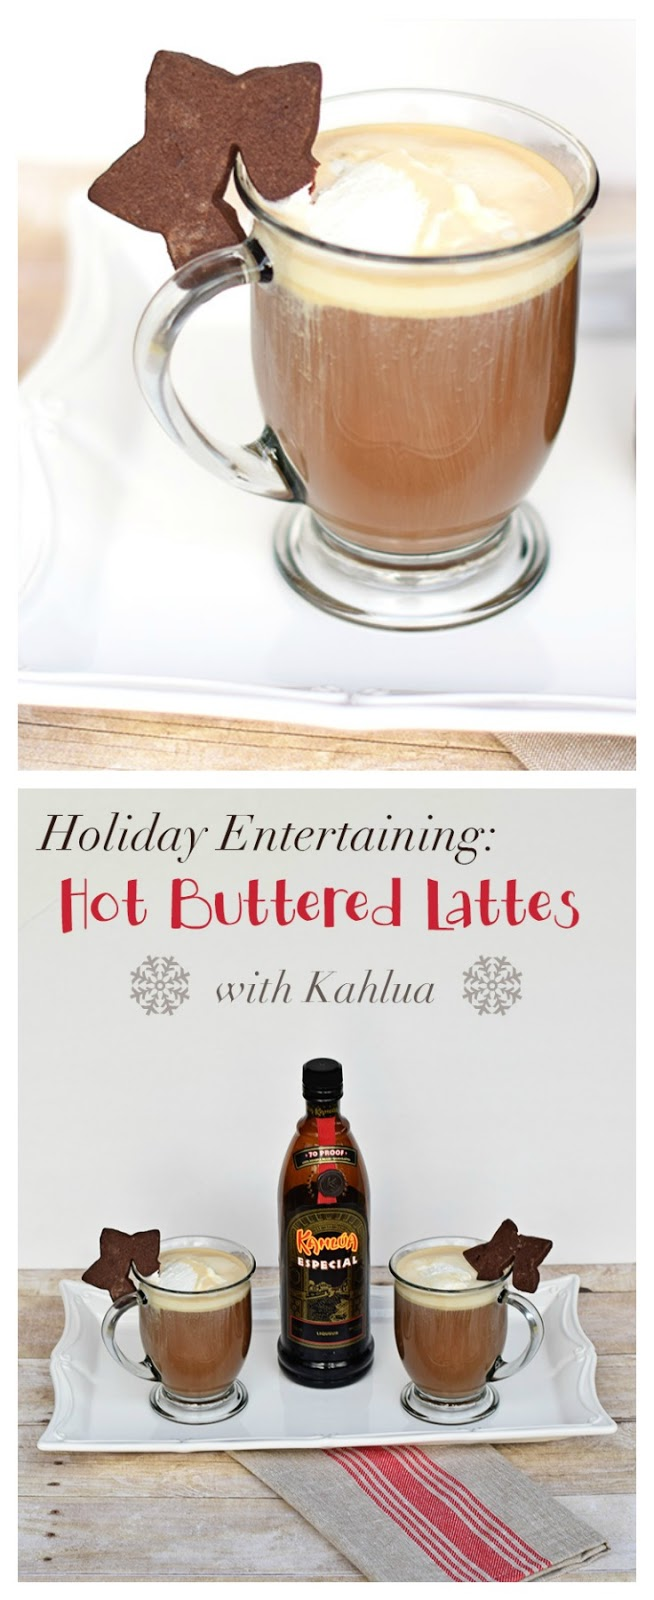 Holiday Entertaining: Hot Buttered Lattes. Need a Christmas Coffee Drink? Look no further than this Christmas Latte. A spin off of the Hot Buttered Rum, it features fresh coffee and Kahlua. Please your holiday guests with this delightful drink. Part of the Holidays Made Easy Blog Series. #HolidaysMadeEasy #kahlua #holiday #drinks #Menu Ideas